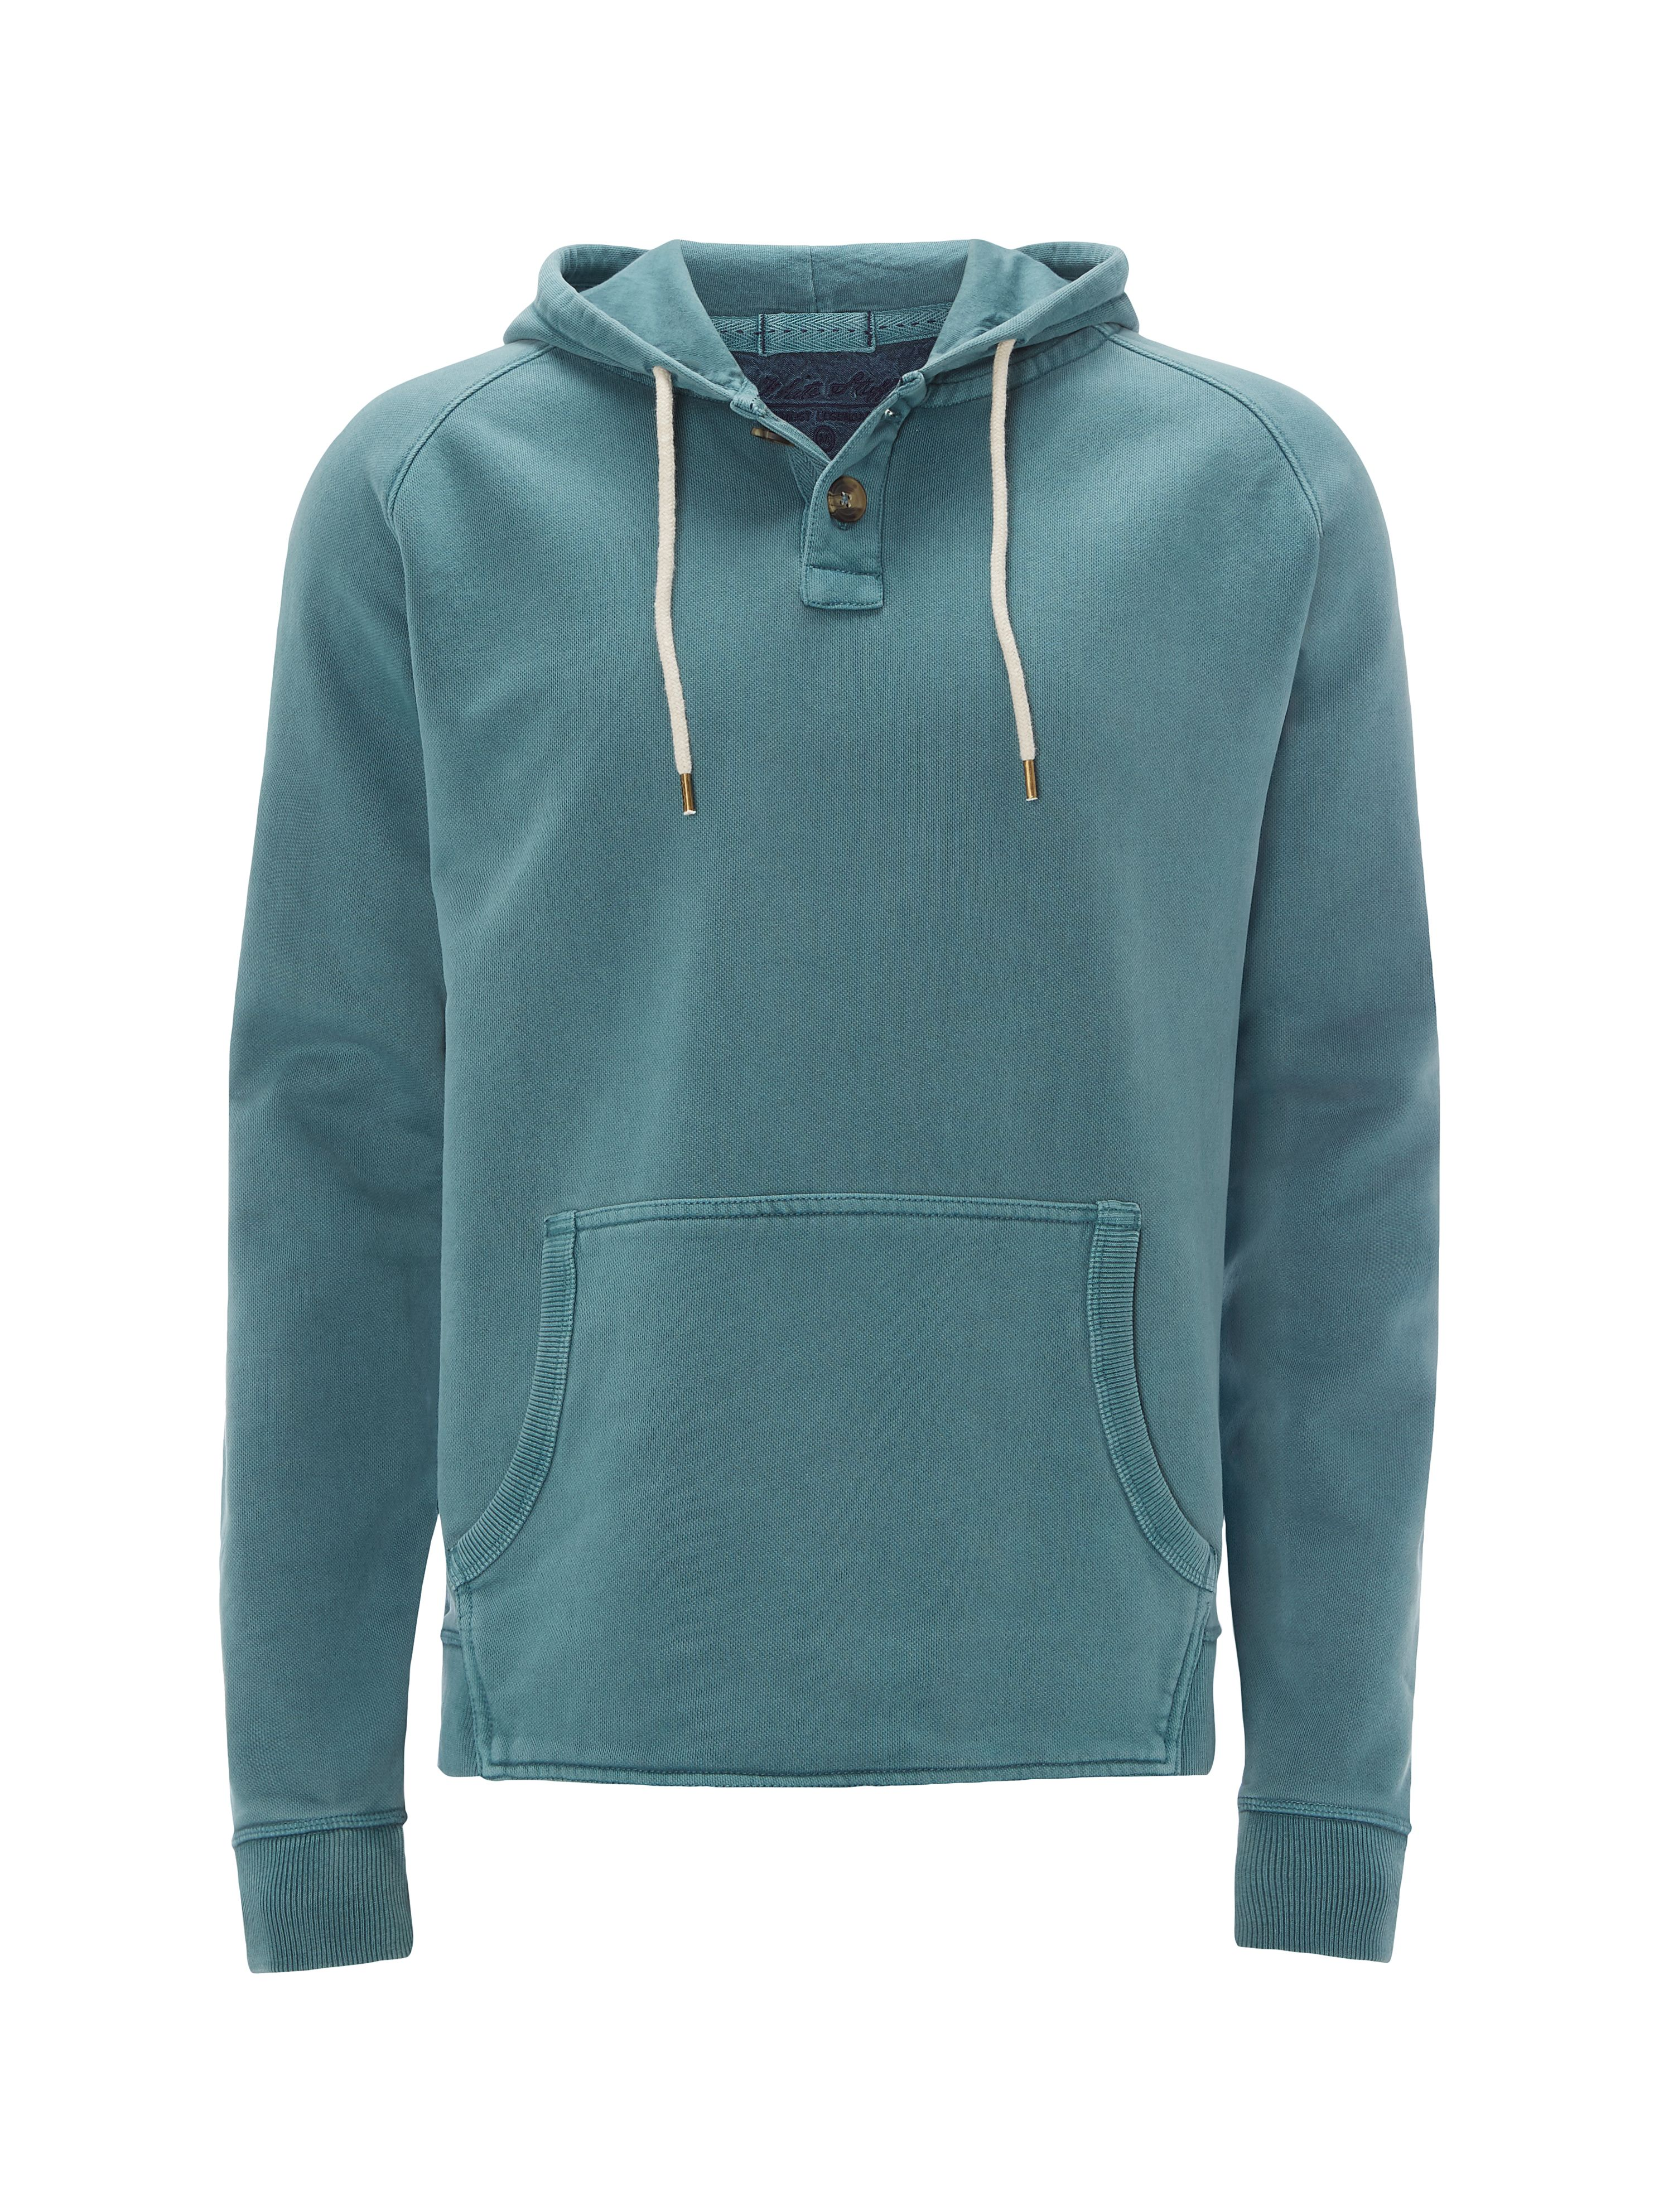 Men's White Stuff Burdock Hoody, Green